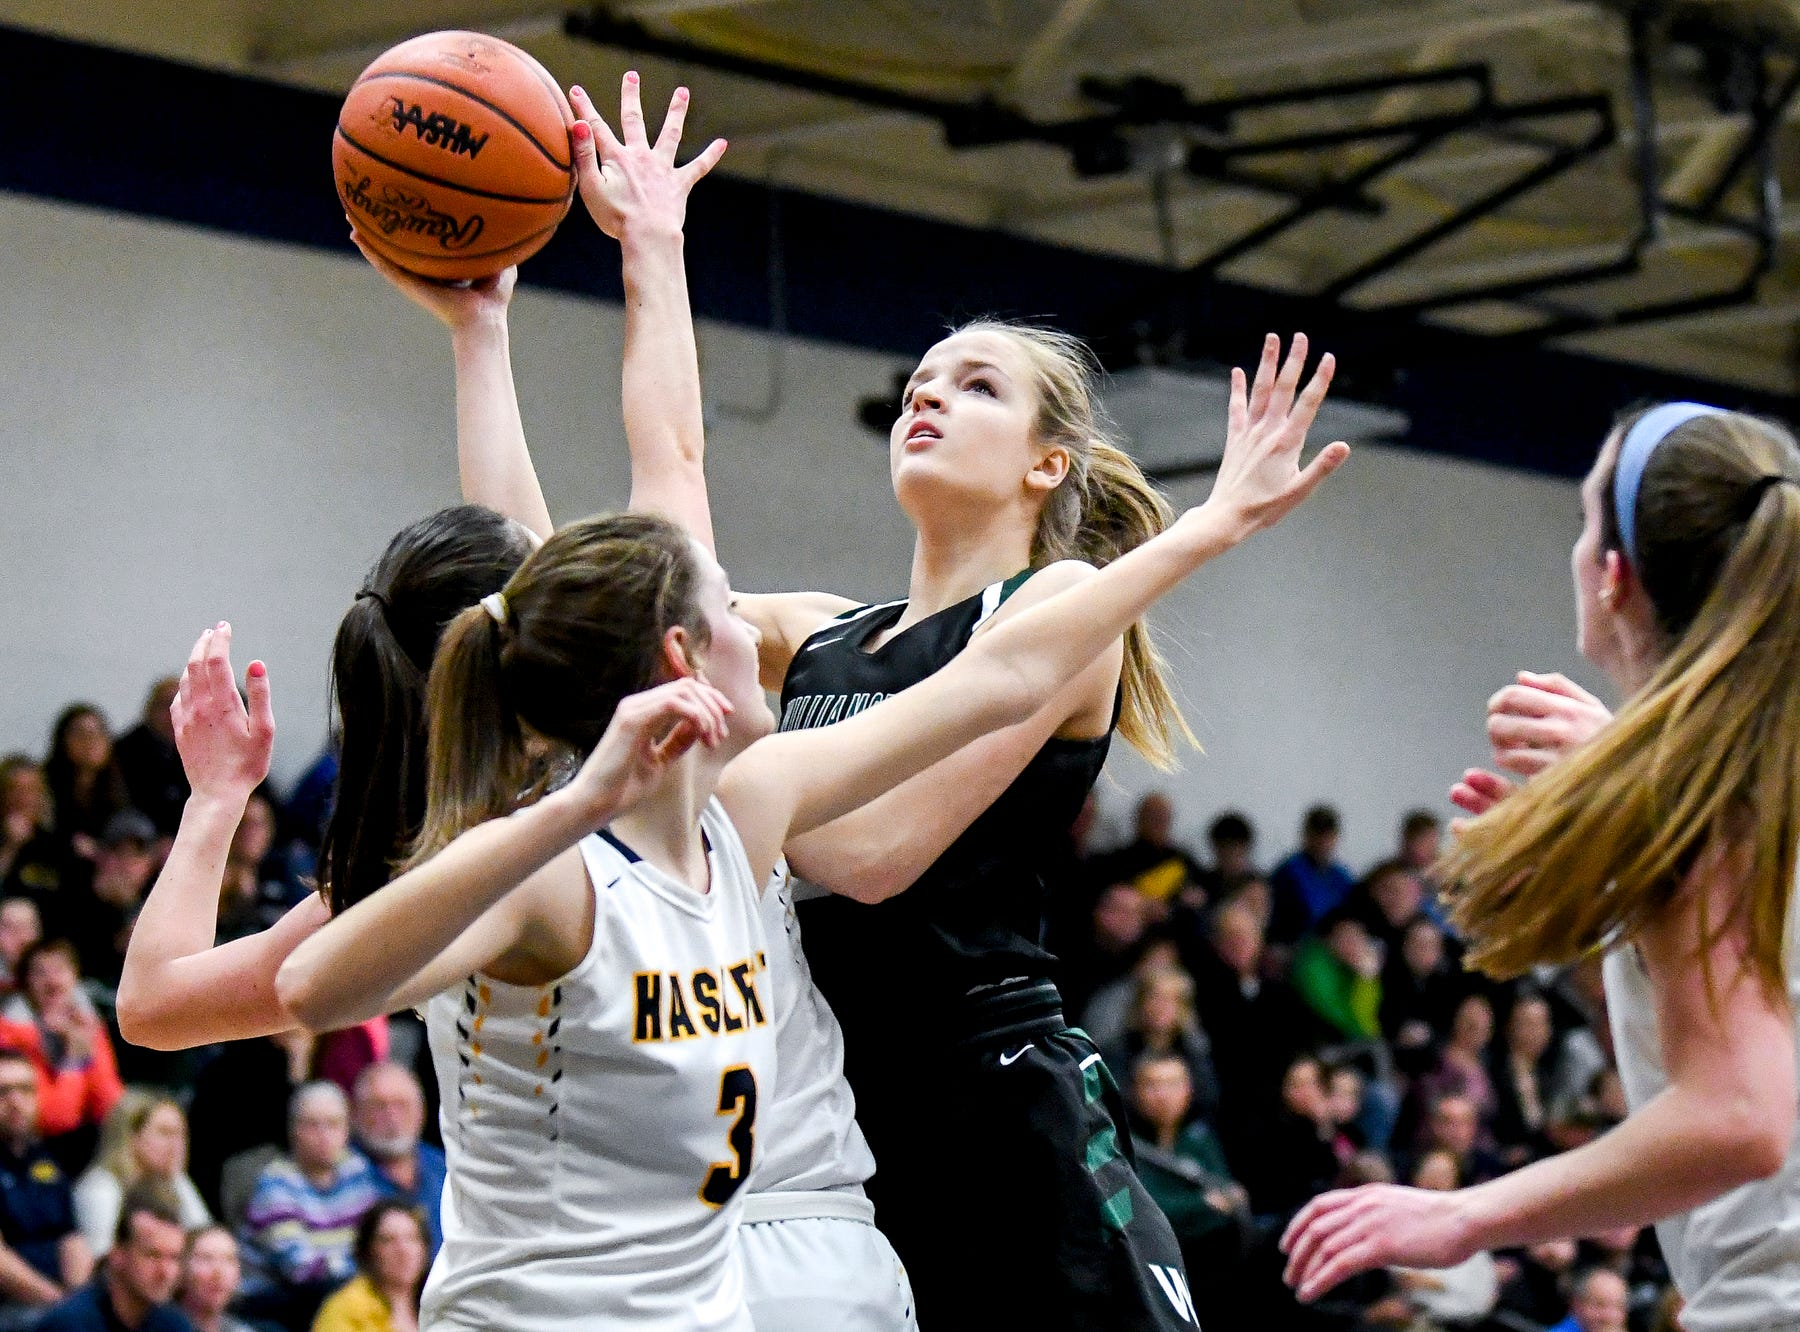 Williamston girls basketball made growth to capture latest league championship